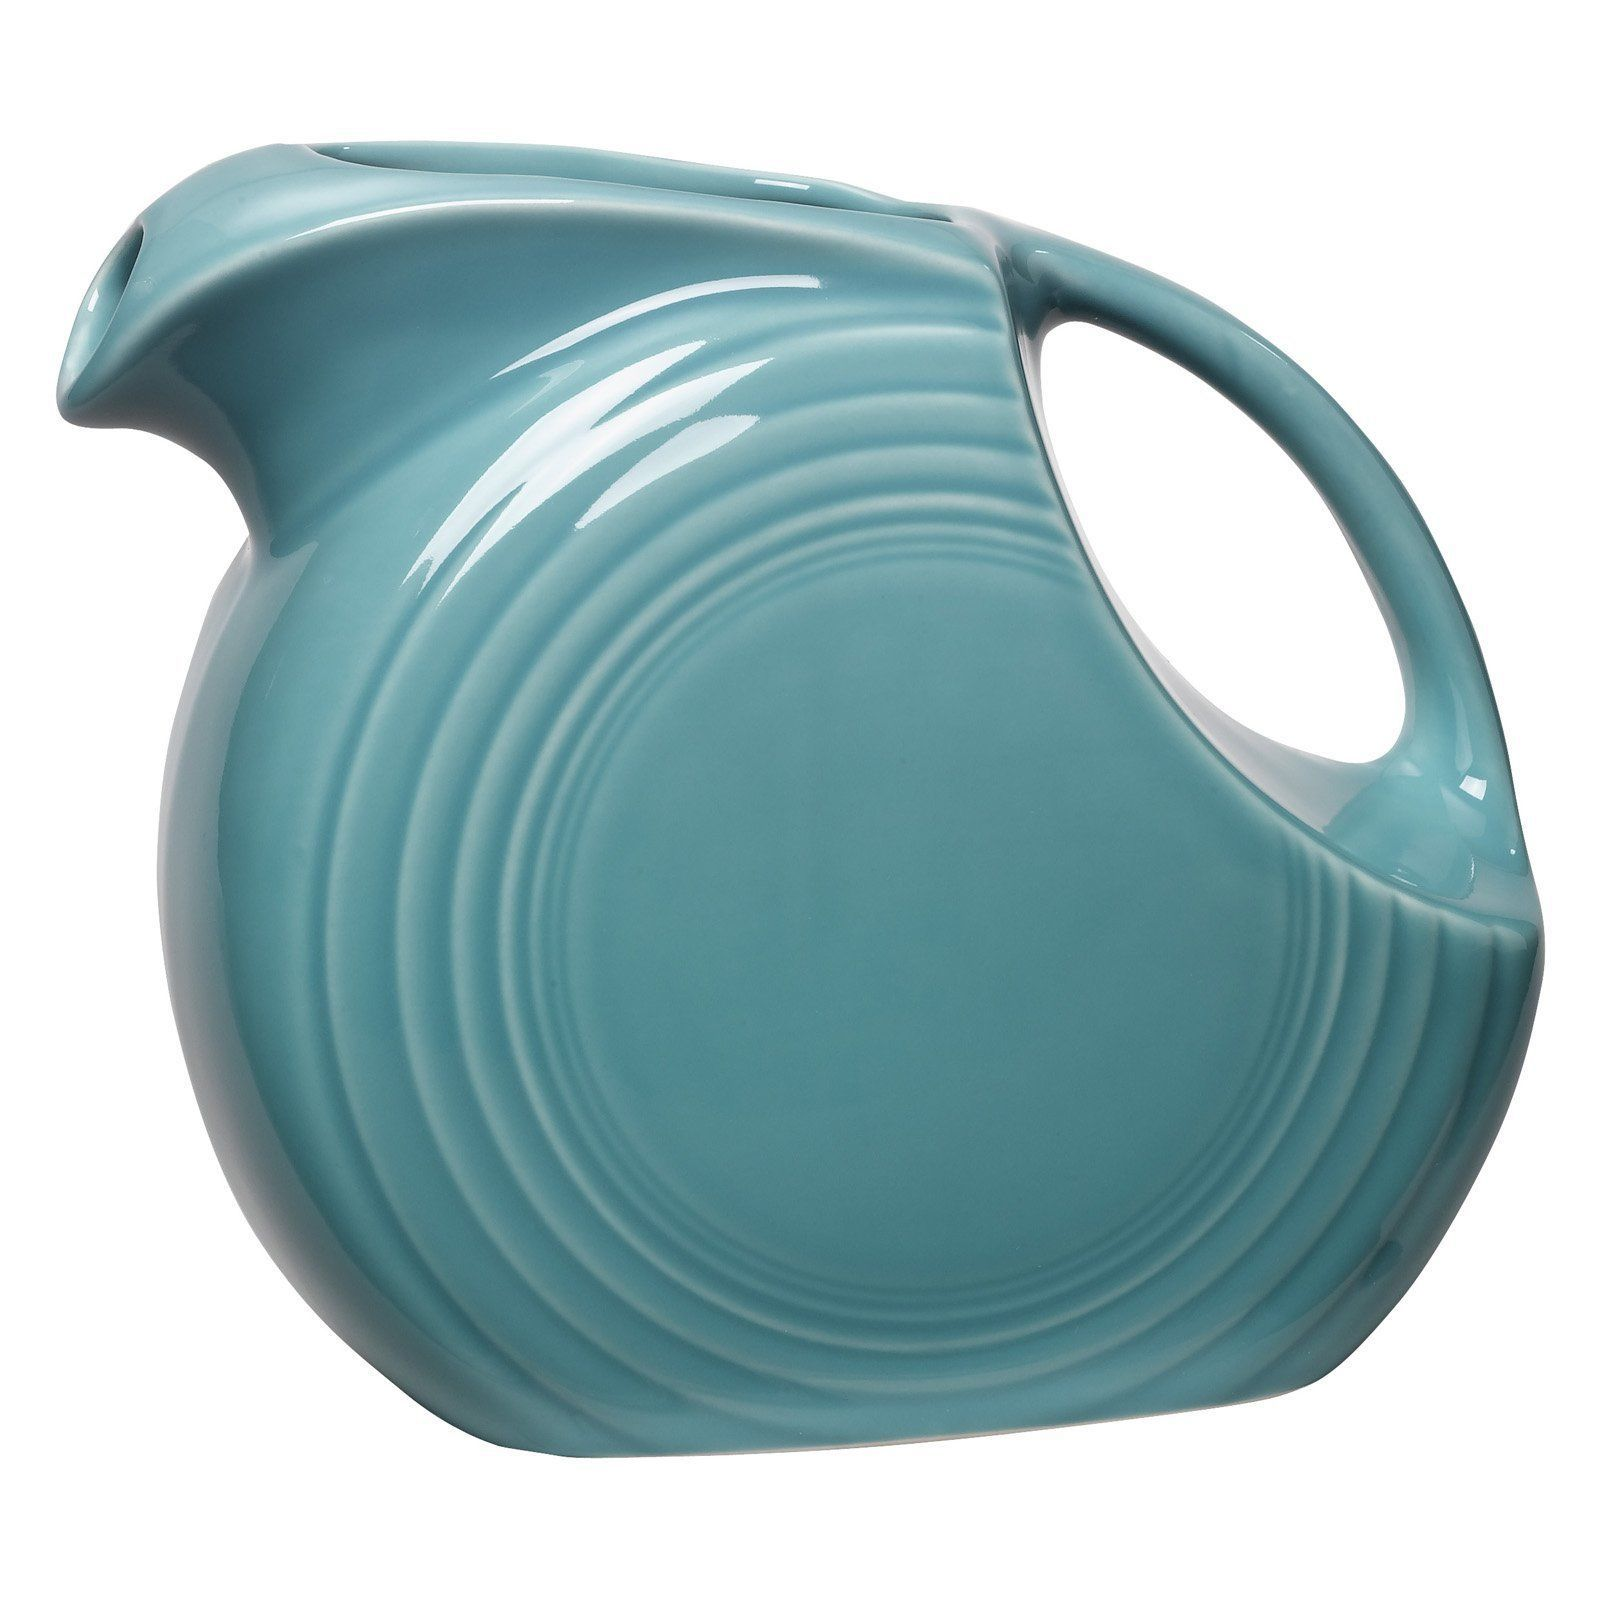 Fiesta Pitcher Large Blue Turquoise Disk Fiestaware 67 Disc Oz Ounce 8 Cups New - $64.37